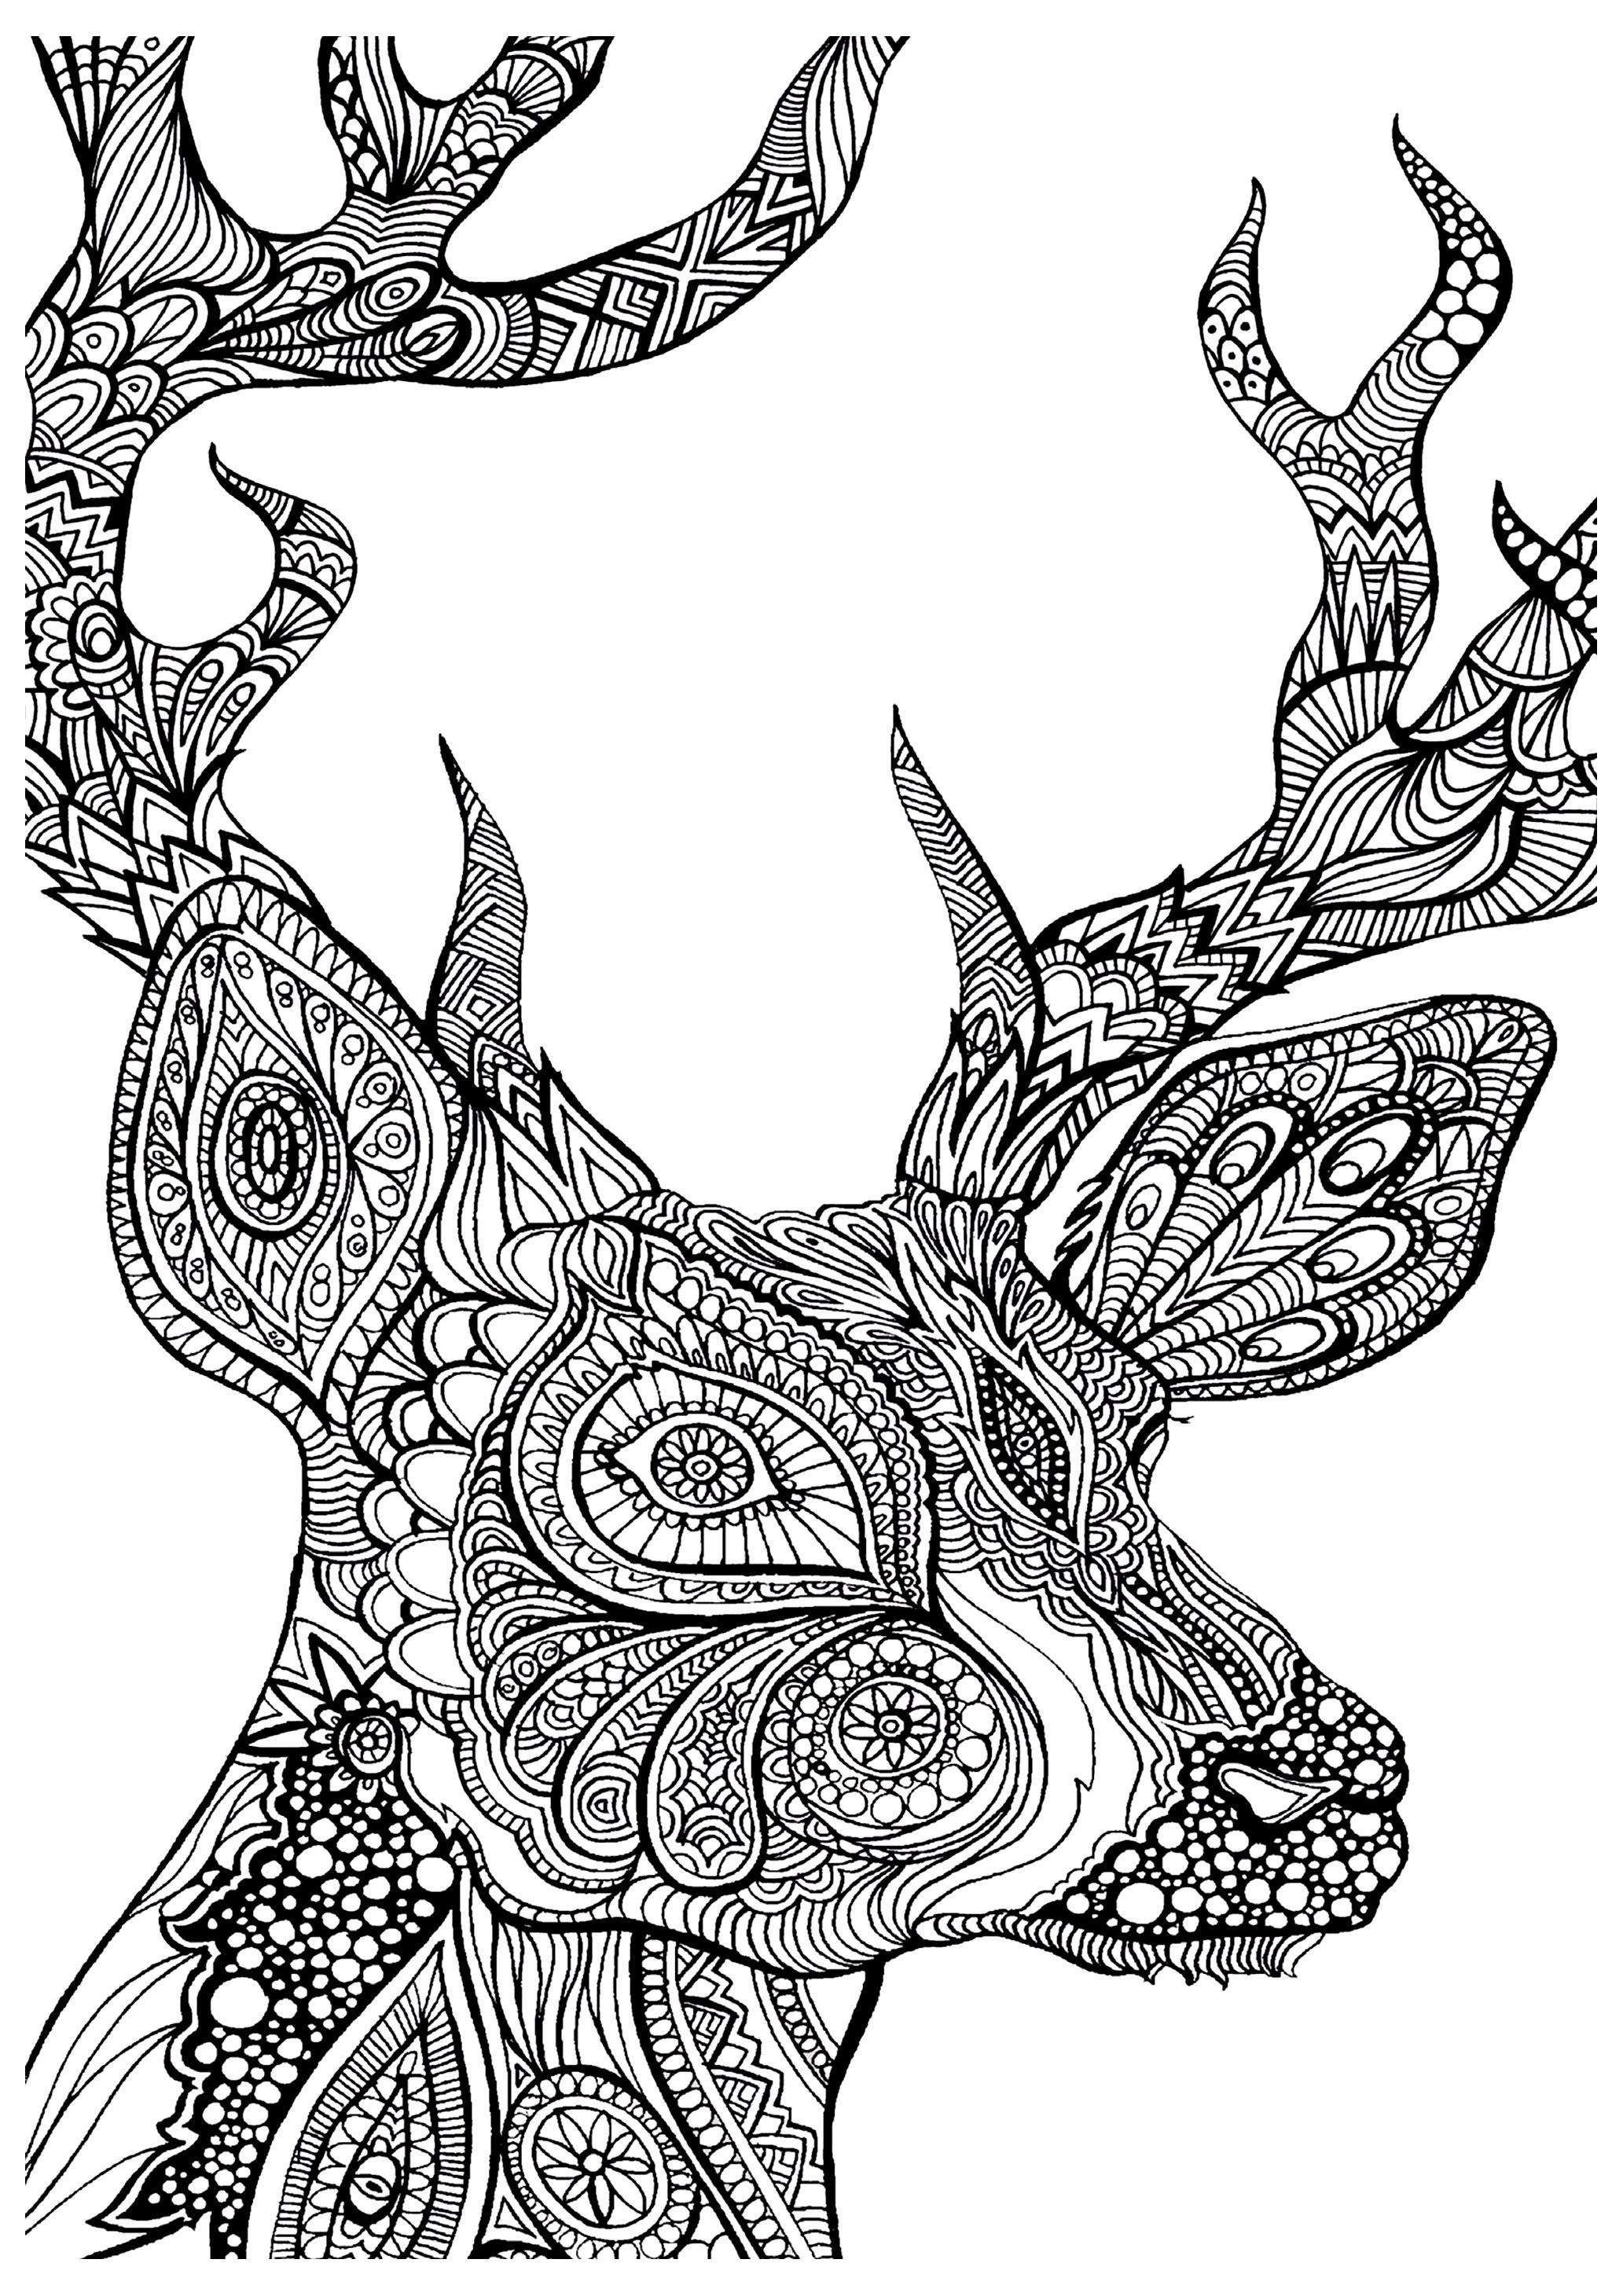 Clip Art Deer Head Coloring Pages 1000 images about coloring pages for relaxation on pinterest sailing ships free printable and books